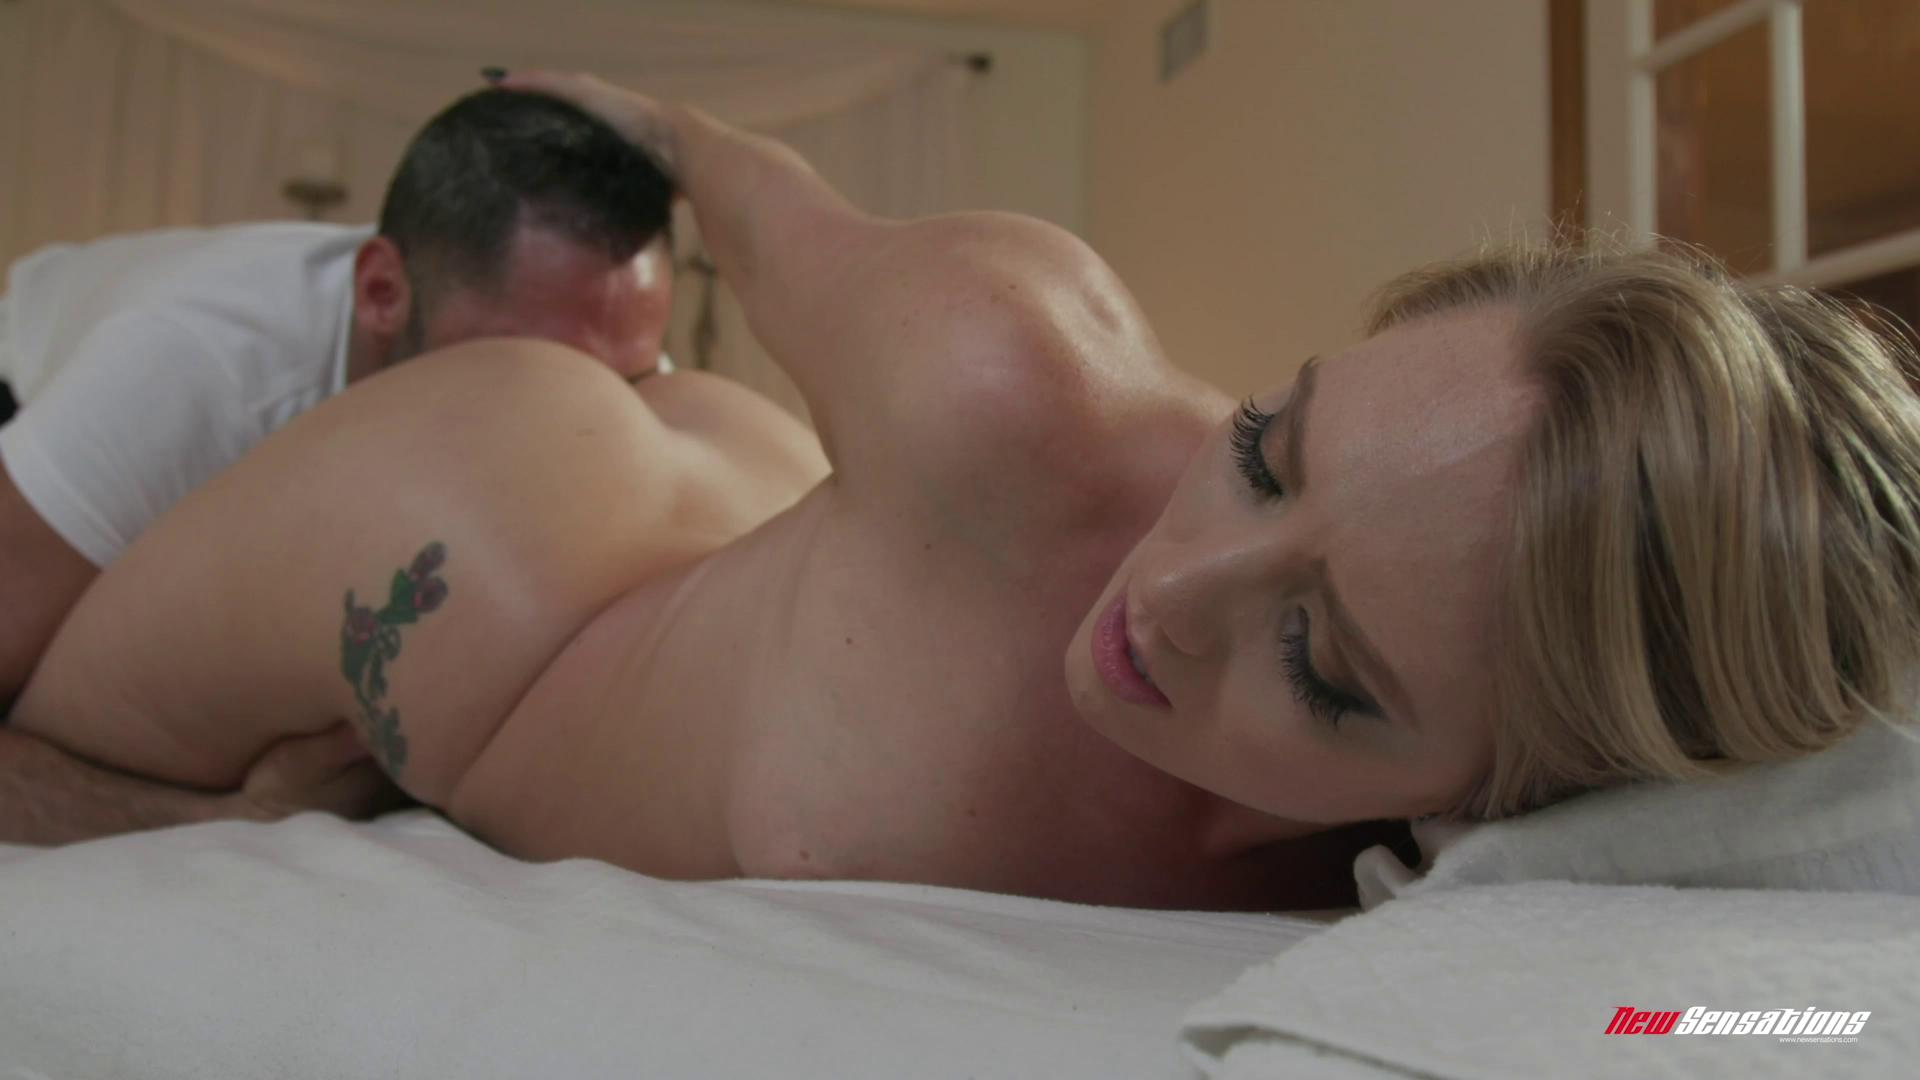 NewSensations – AJ Applegate